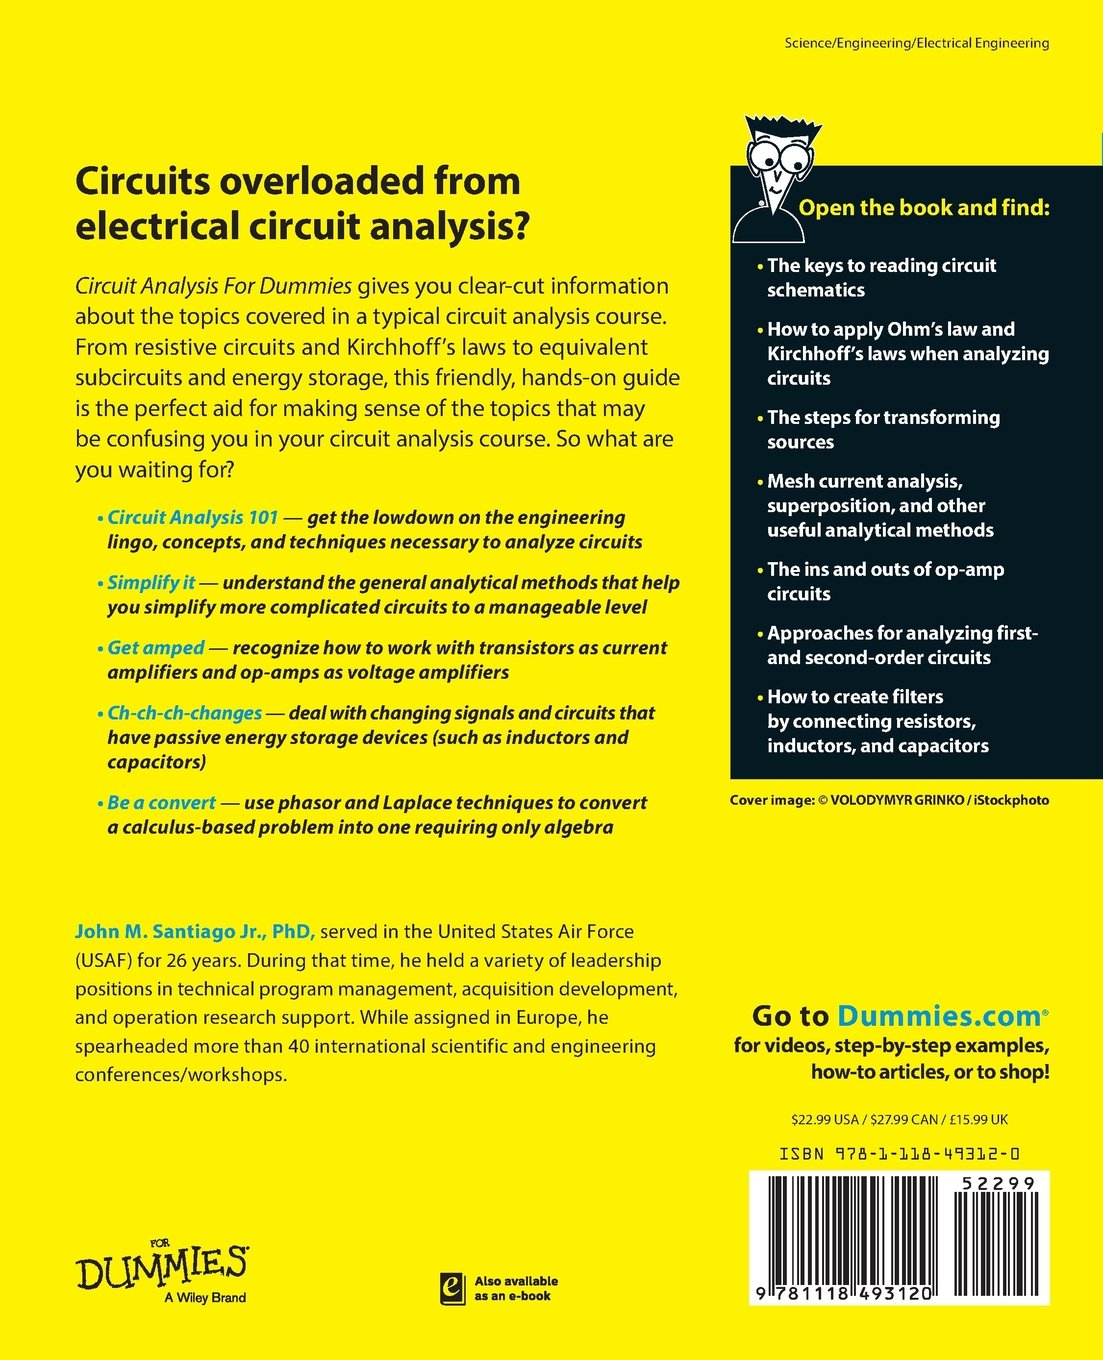 Buy Circuit Analysis For Dummies Book Online at Low Prices in India ...